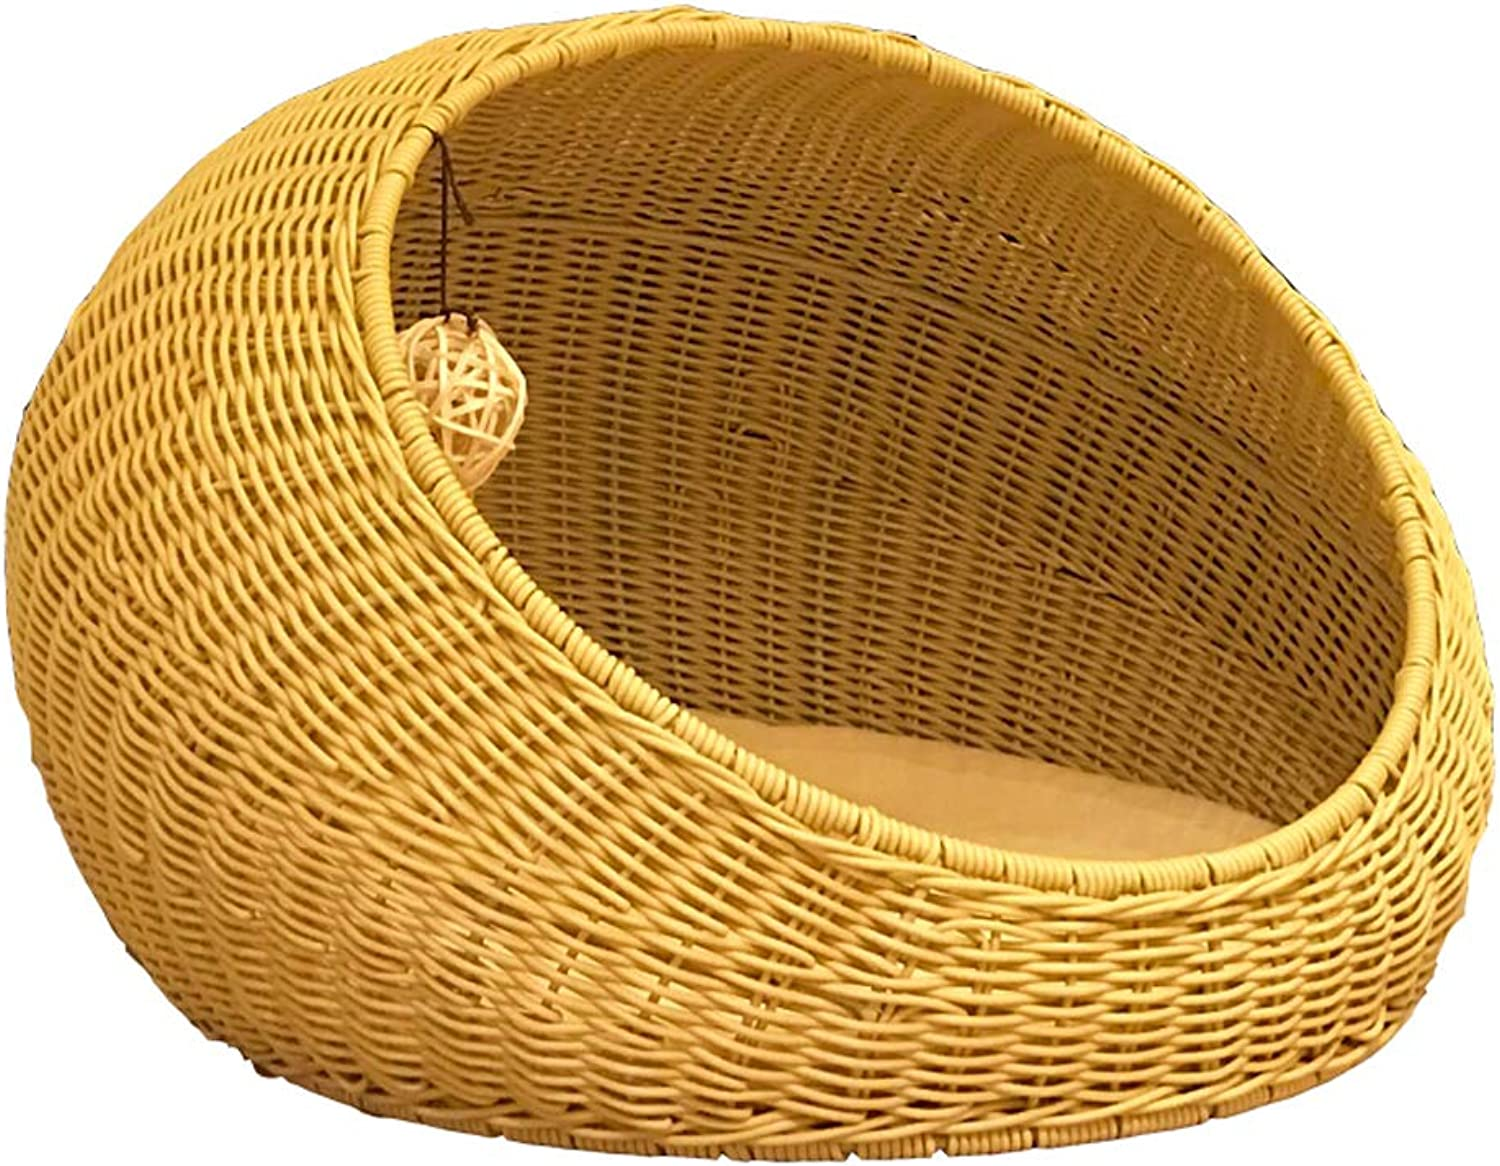 YIZHEN Four Seasons Universal, Luxurious and Beautiful Rattan Cat House, Closed Cat House, Cat Beds for Medium Cats